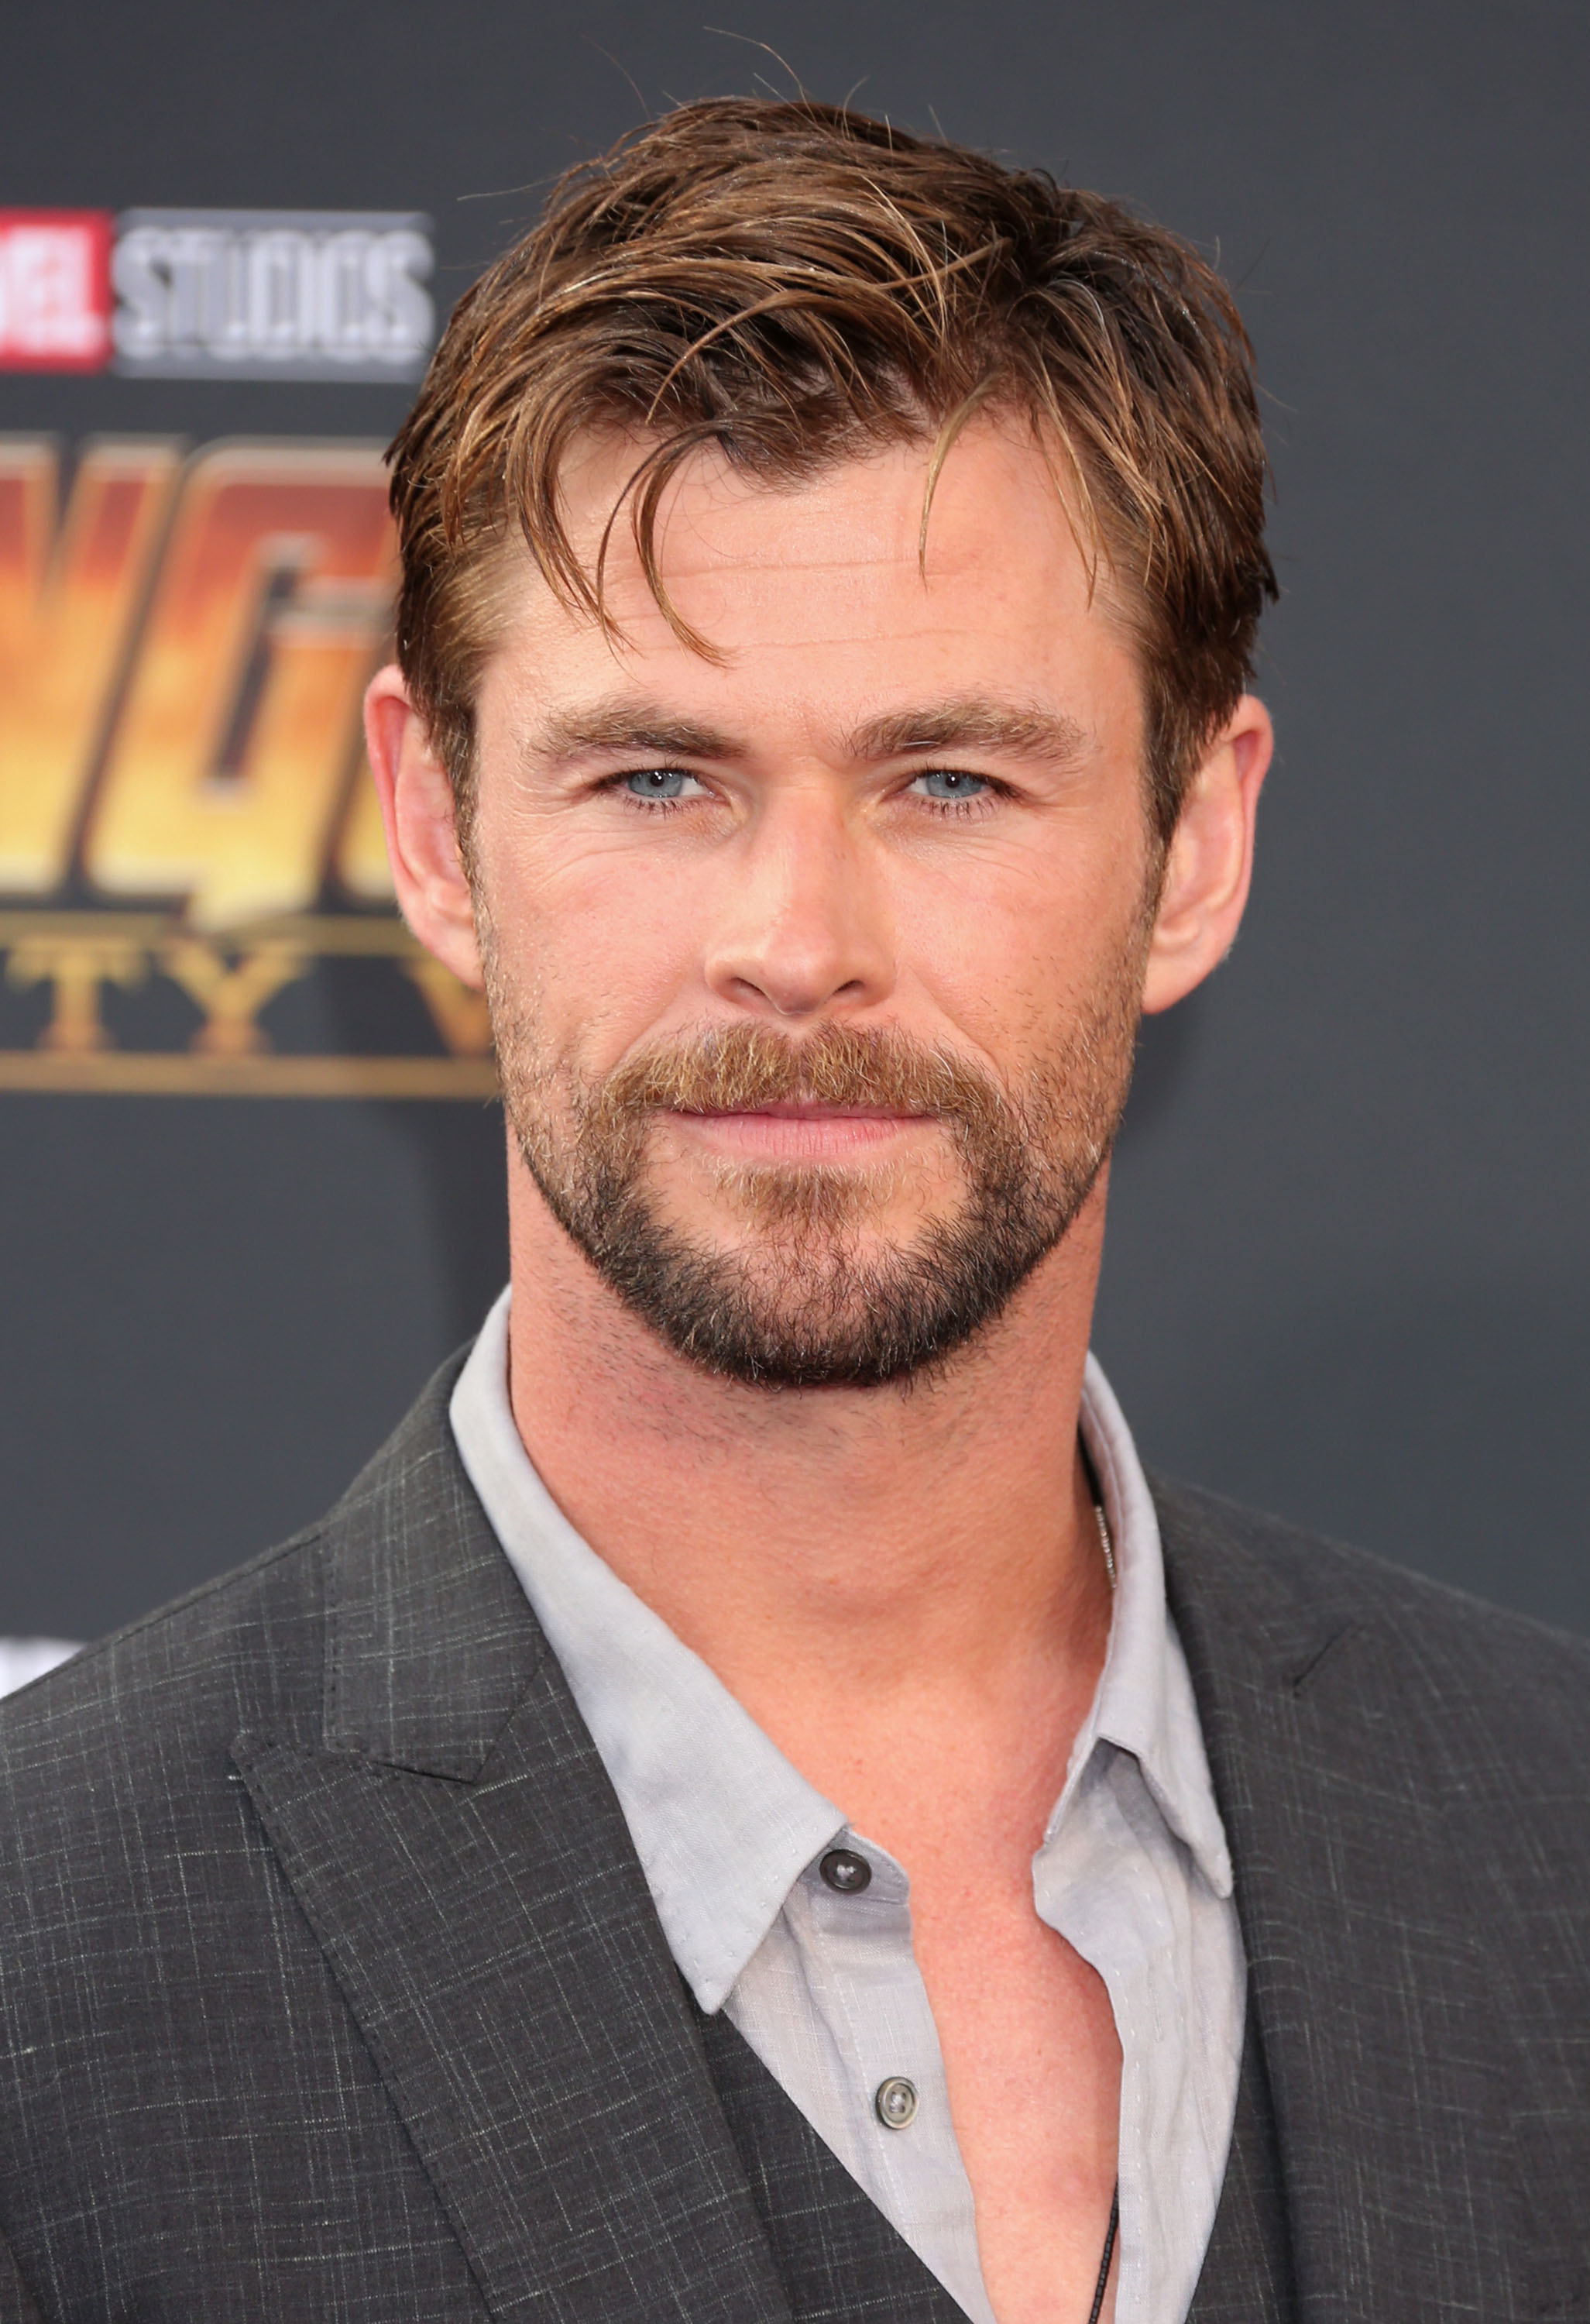 Chris Hemsworth photo #845802